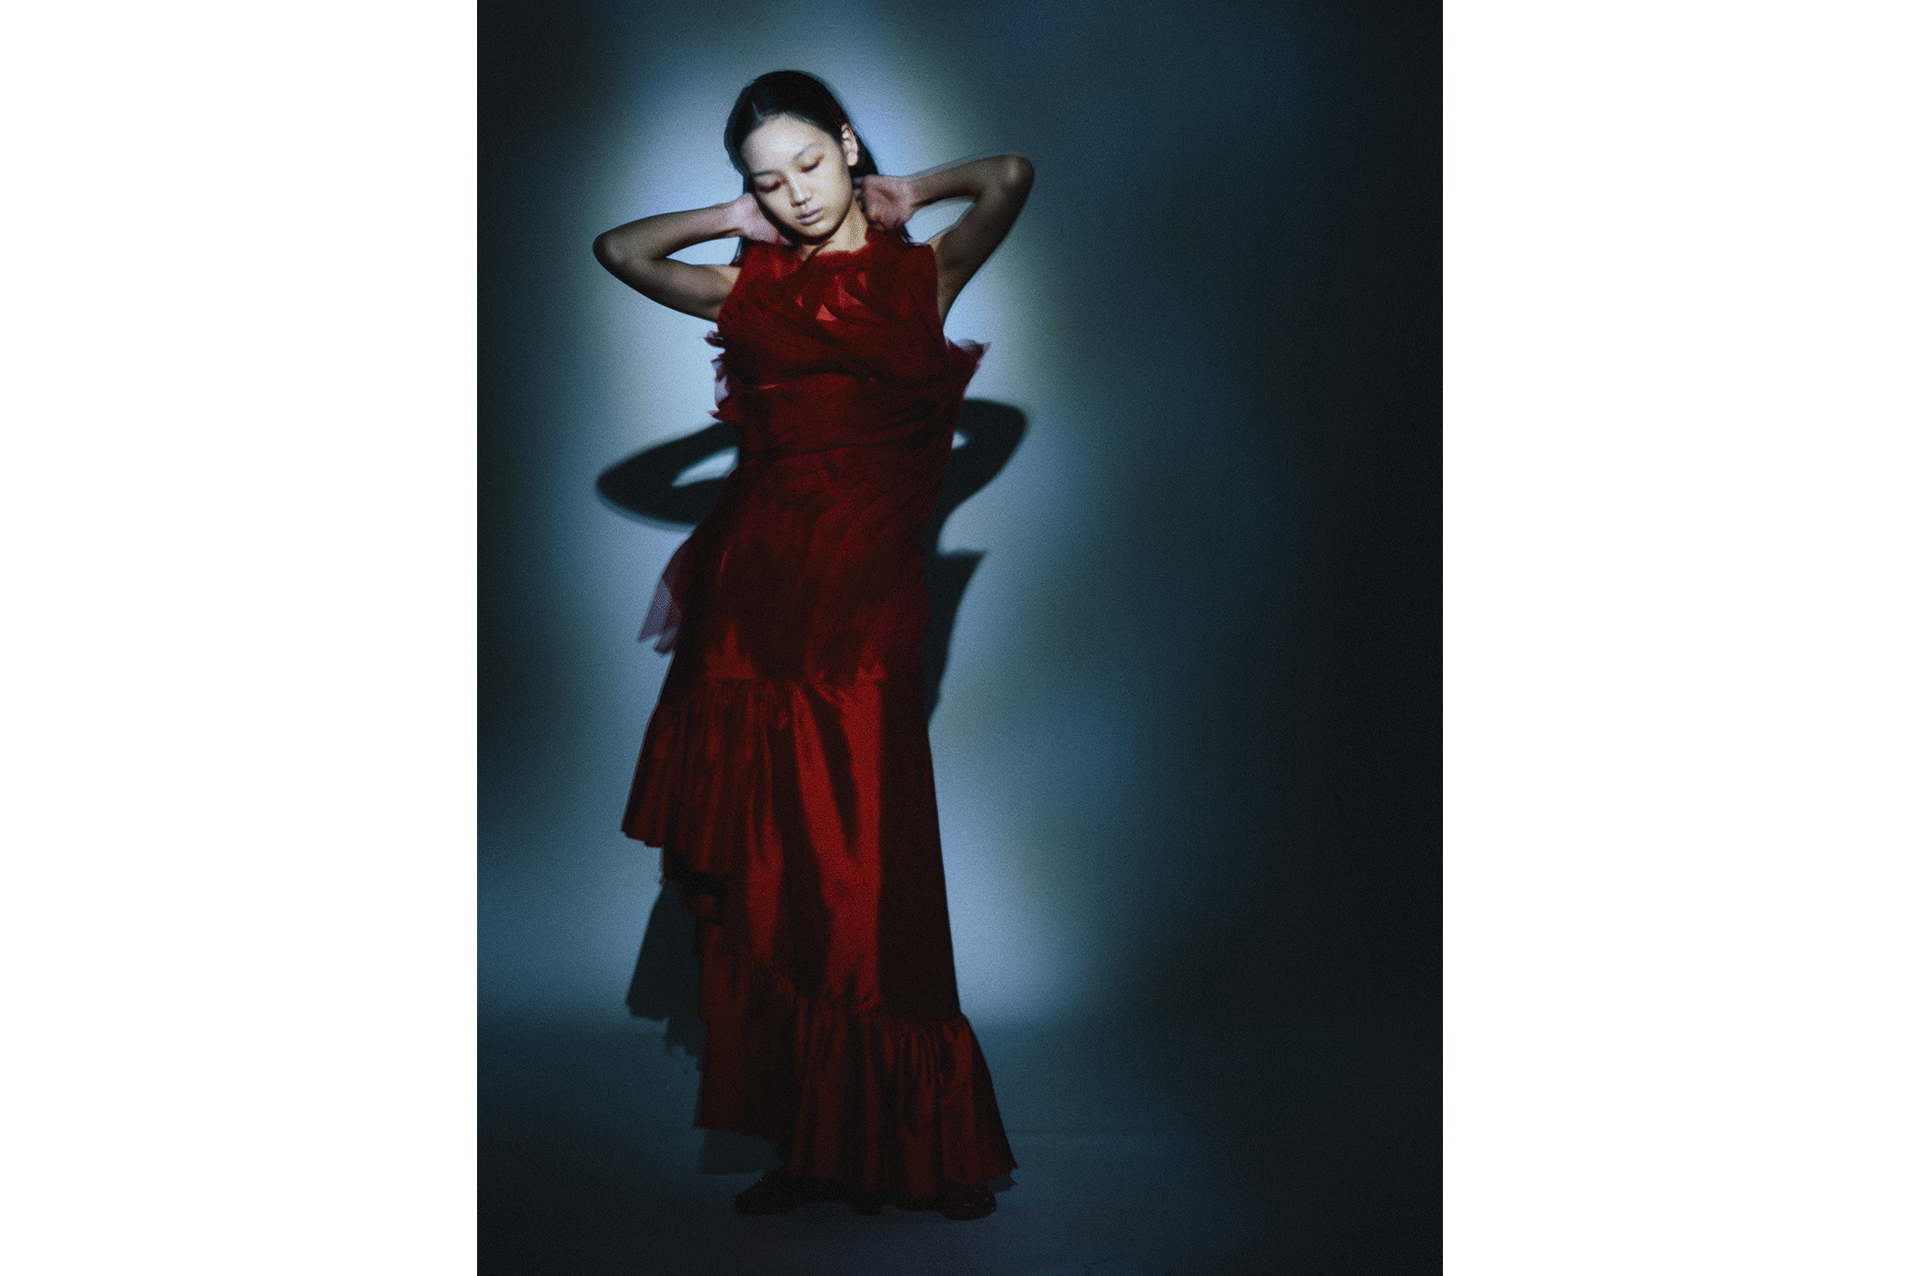 fashion-stylist-toronto-sonia-chedli-editorial-womenswear-photography-fashion-stylist-toronto-sonia-chedli-editorial-womenswear-red-dress-marques-almeida